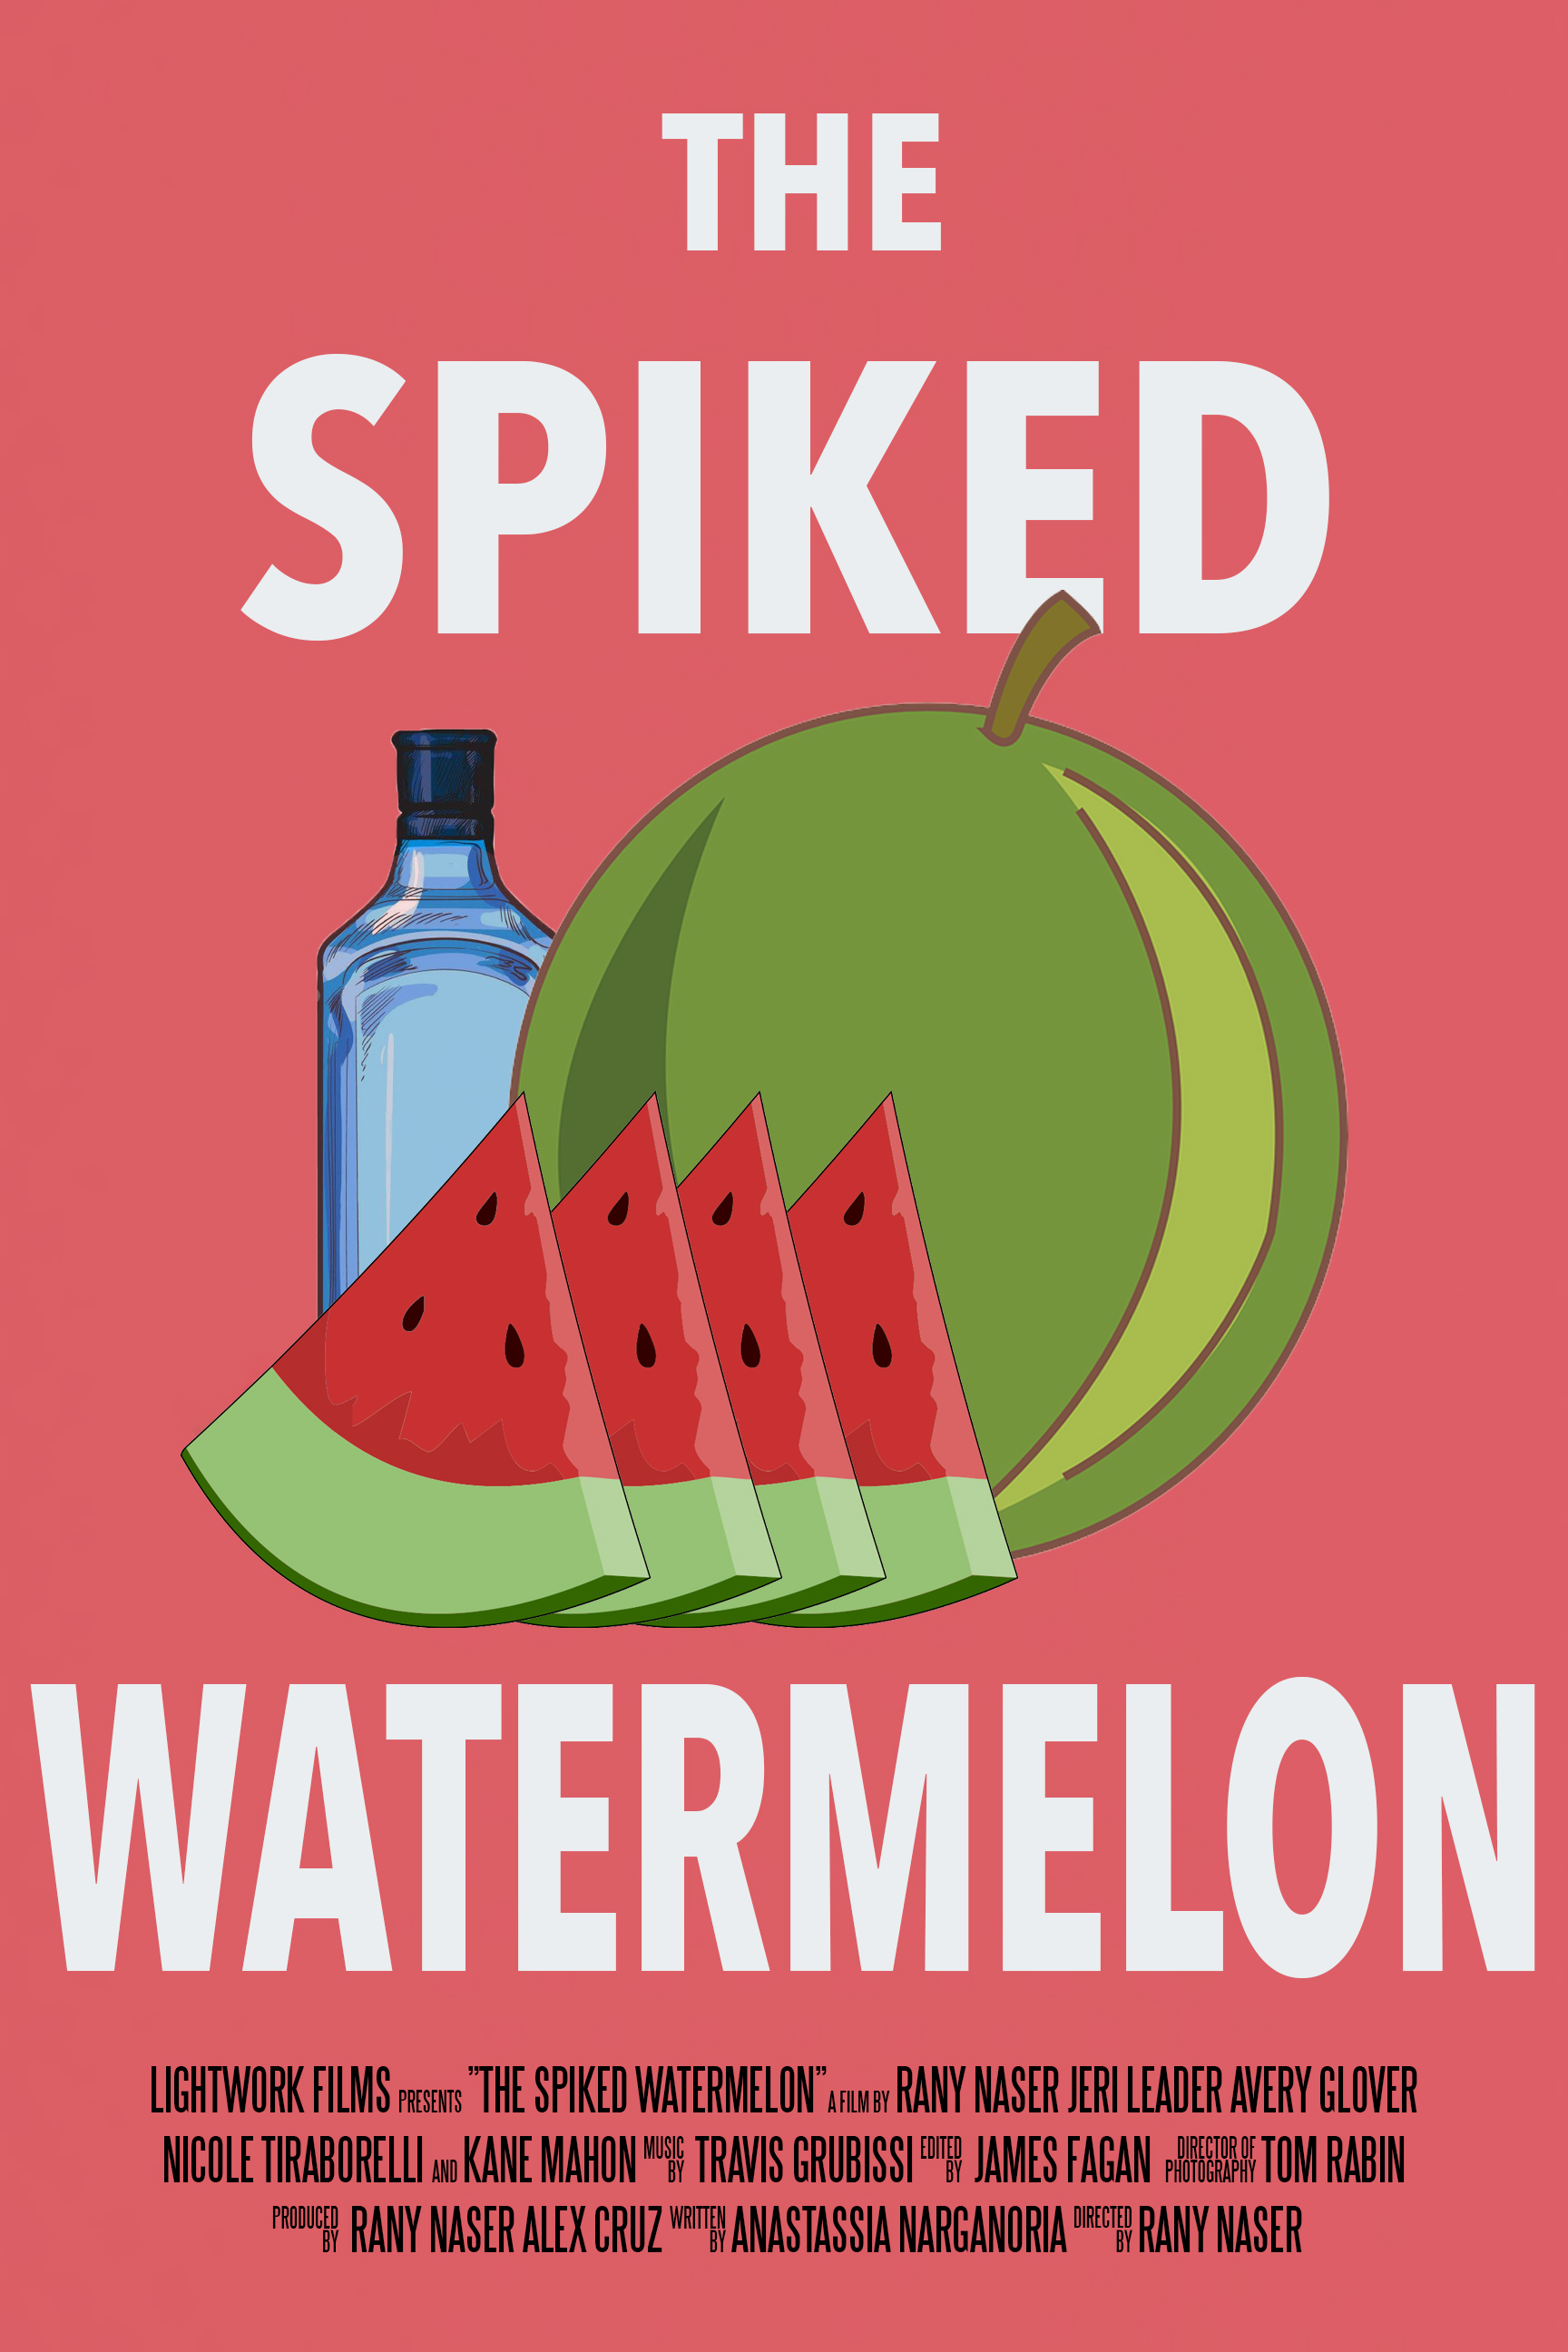 The Spiked Watermelon Poster